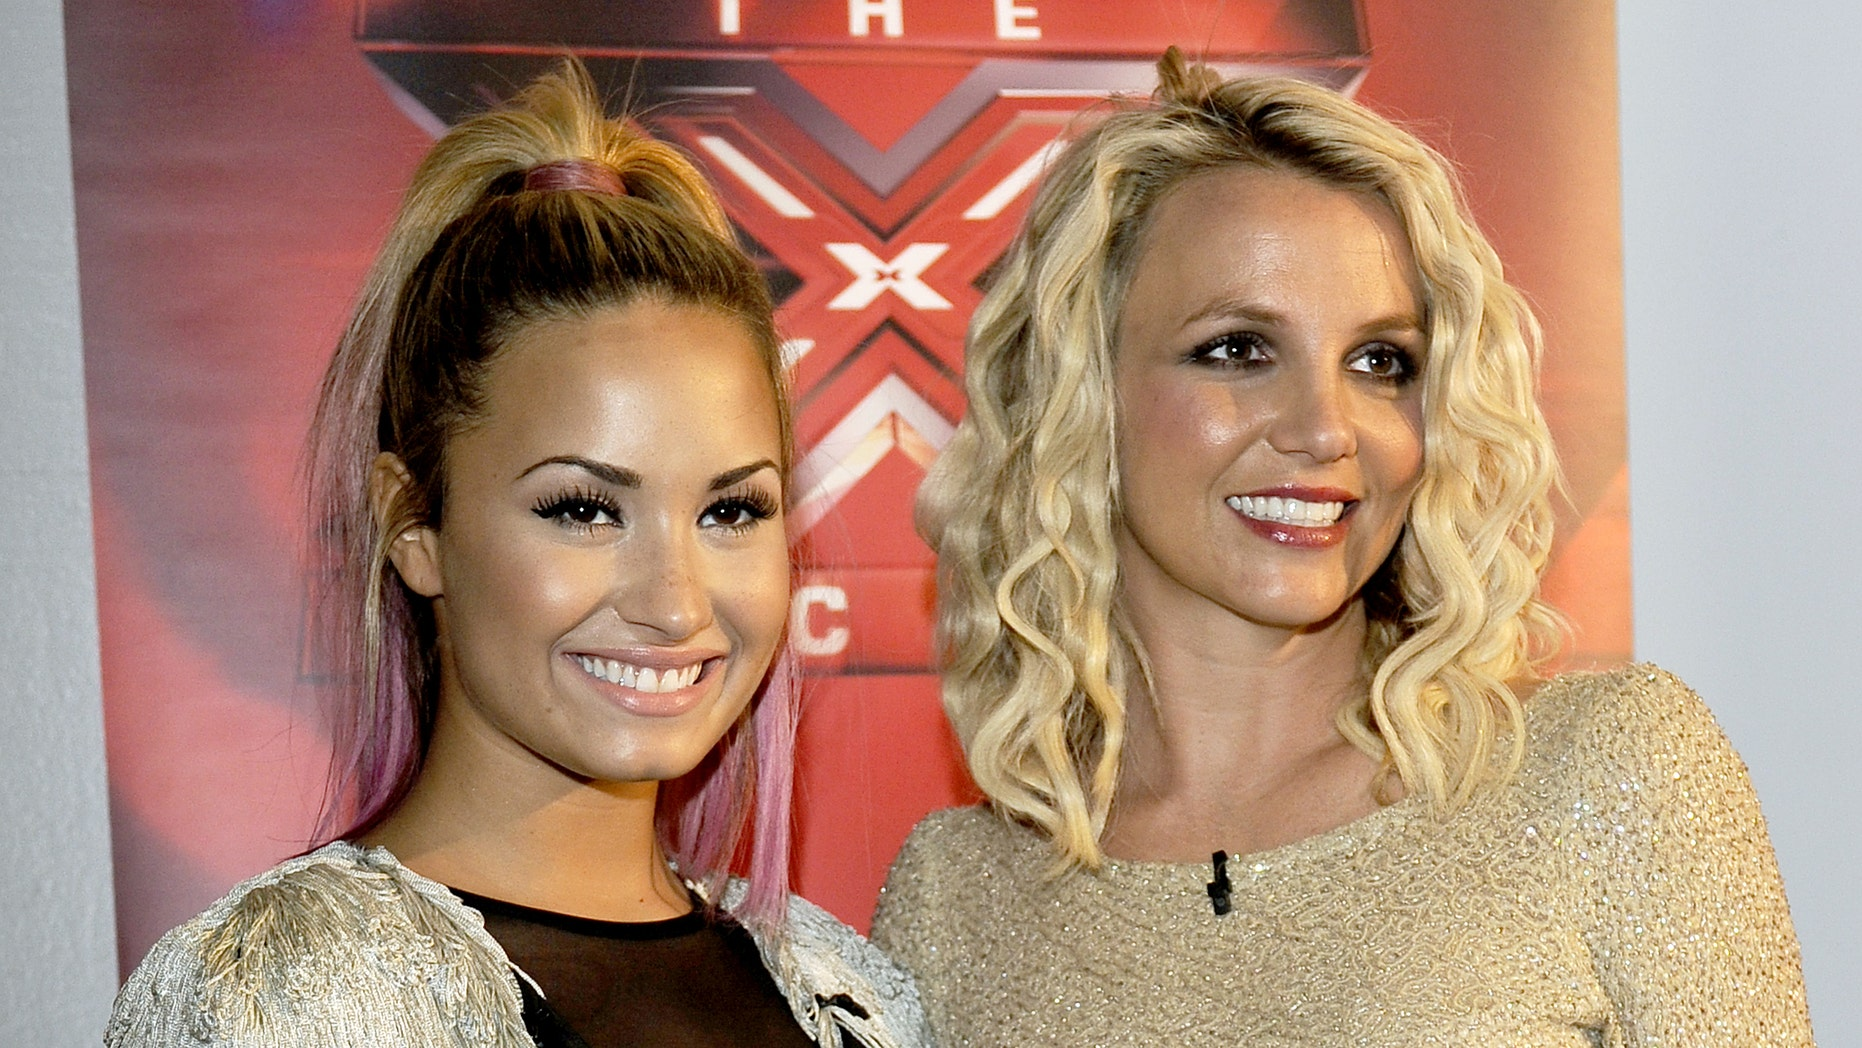 """OAKLAND, CA - JUNE 16: Demi Lovato (L) and Britney Spears attend Fox's """"The X Factor"""" Season 2 Auditions at Oracle Arena on June 16, 2012 in Oakland, California. (Photo by Tim Mosenfelder/Getty Images)"""